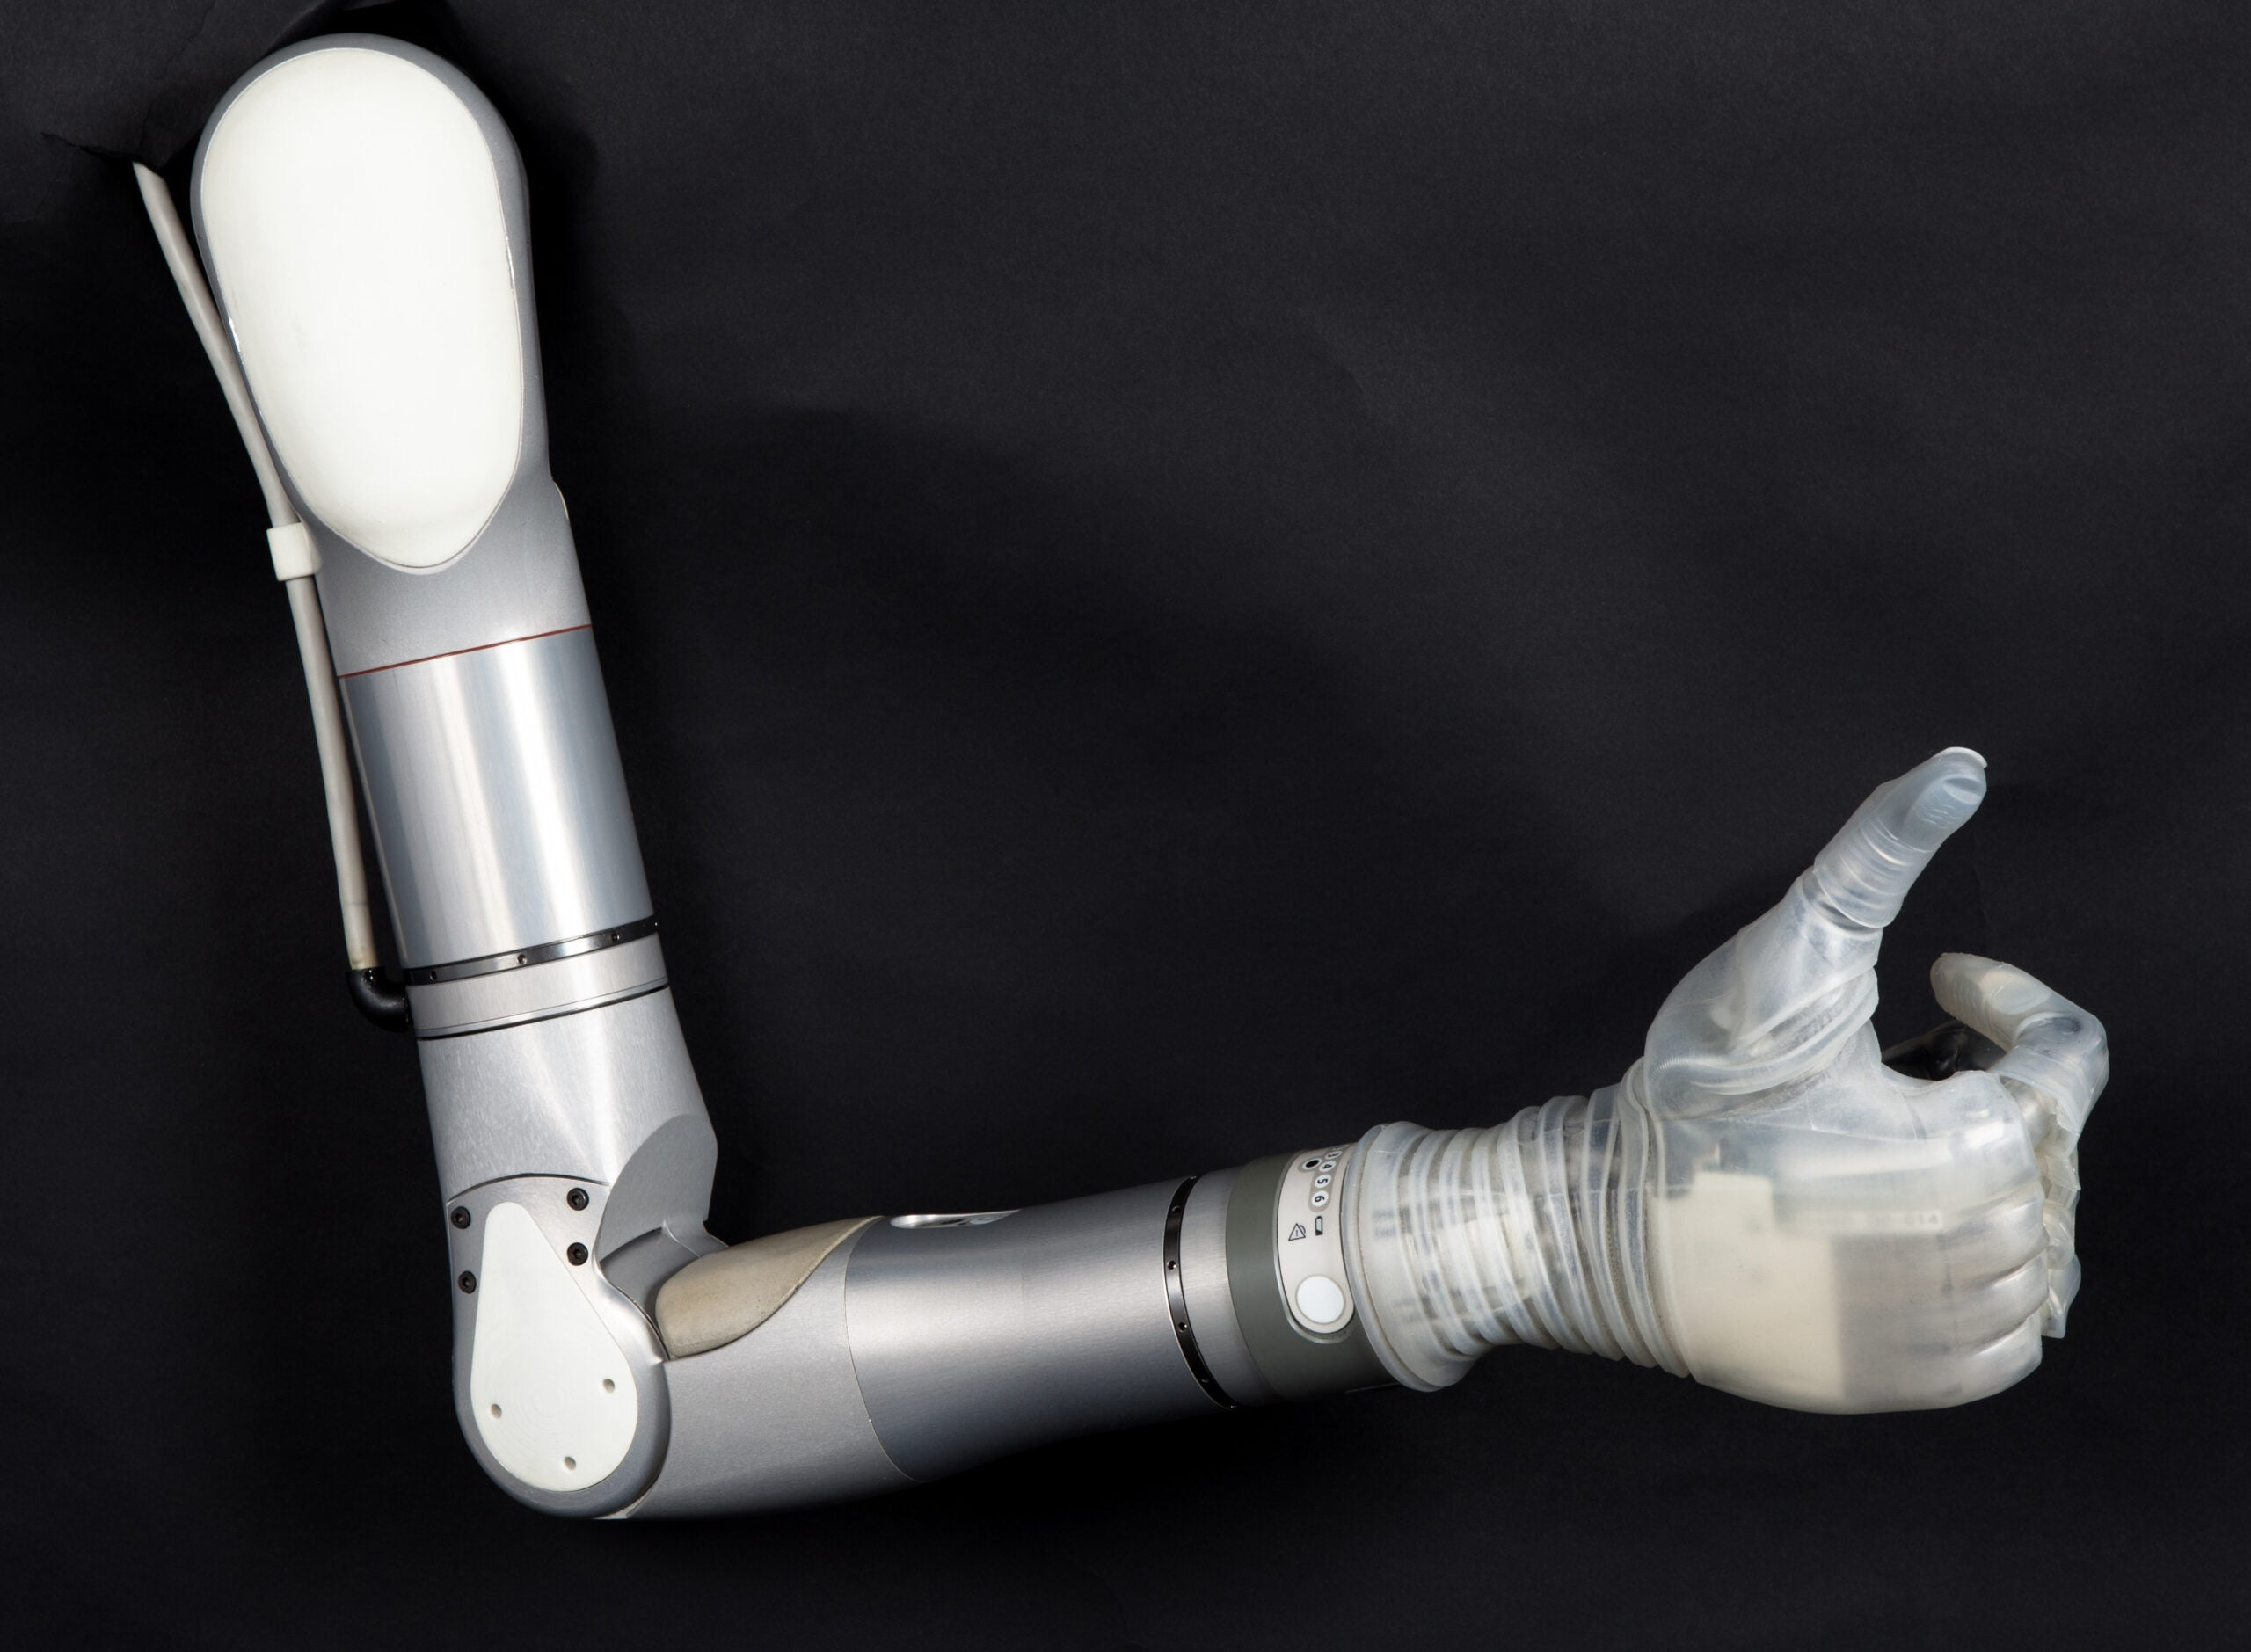 DEKA arm, a prosthetic limb designed by the inventor of the segway